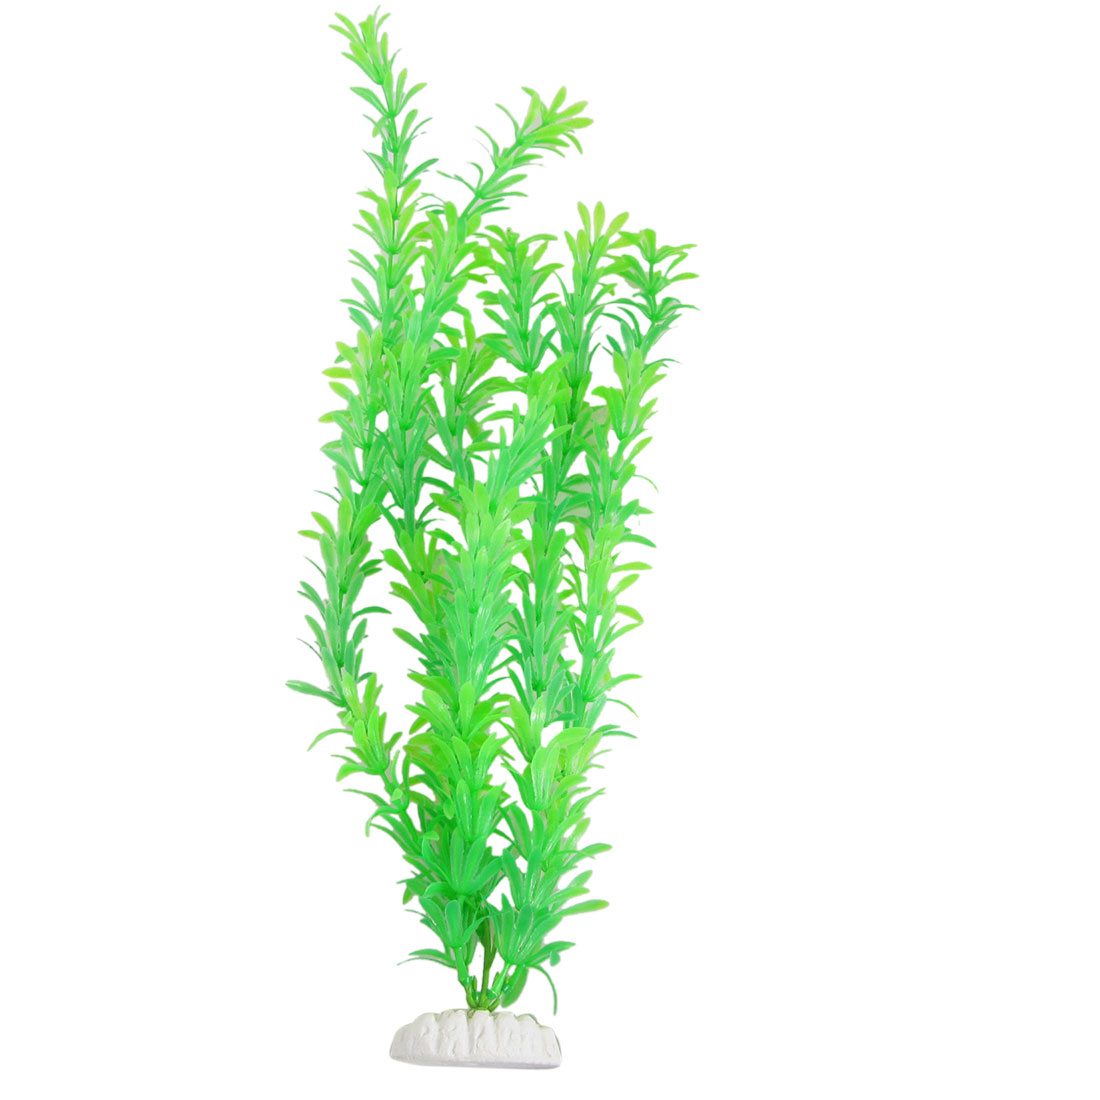 "Green Plastic 18.9"" Plant Grass Decoration for Aquarium"